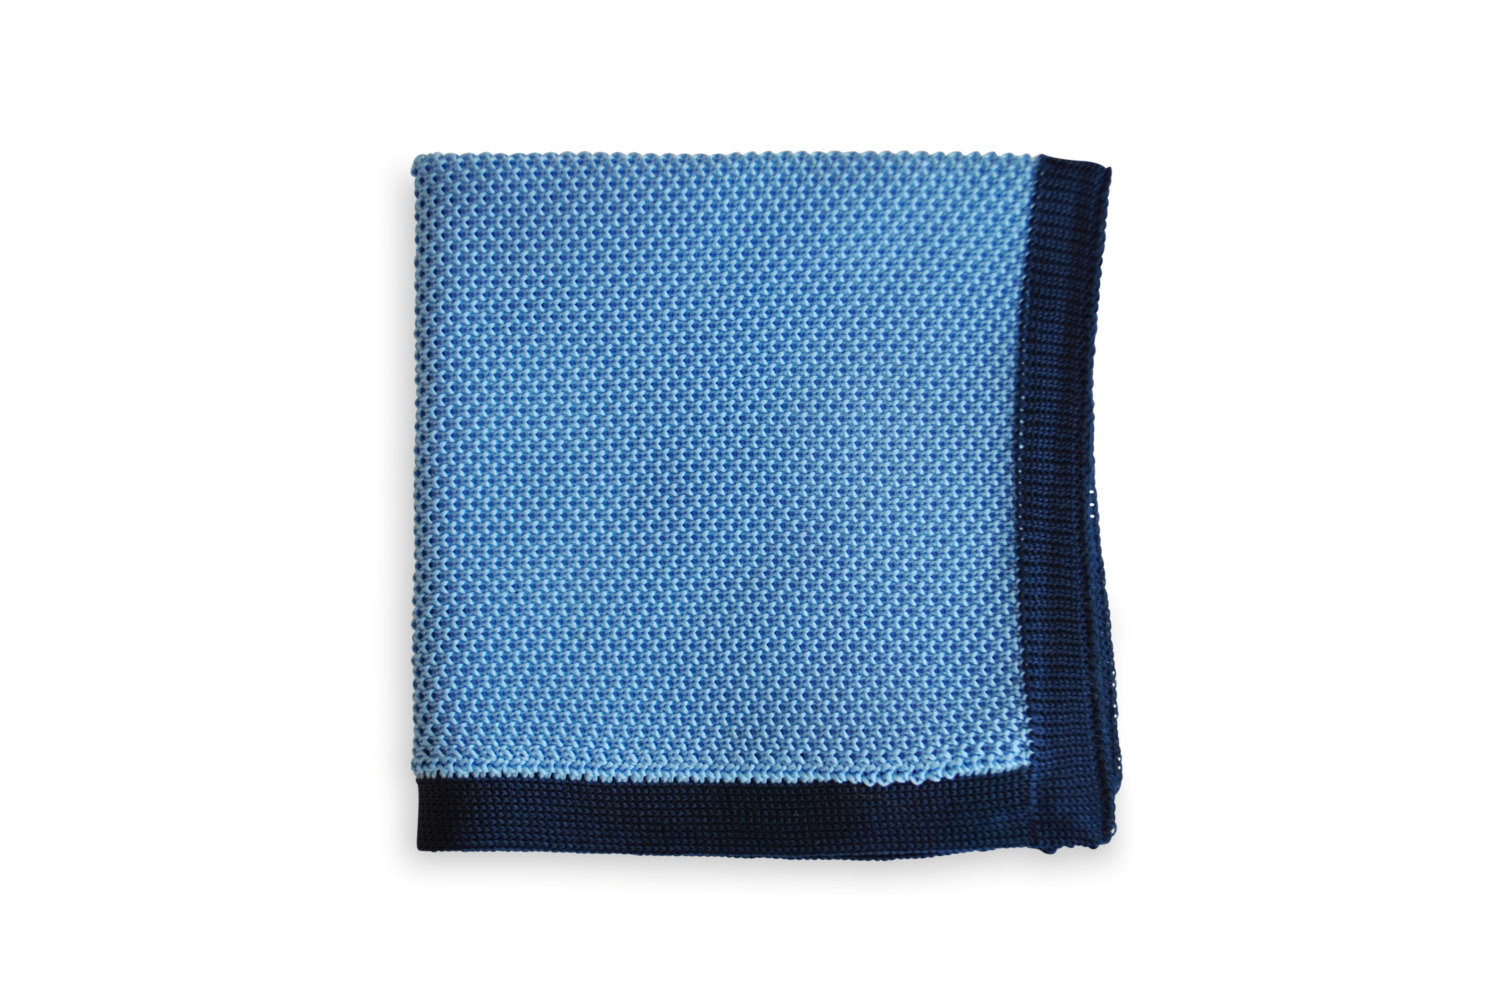 Frederick Thomas knitted Pale Blue with Navy Blue Edging pocket square with whit